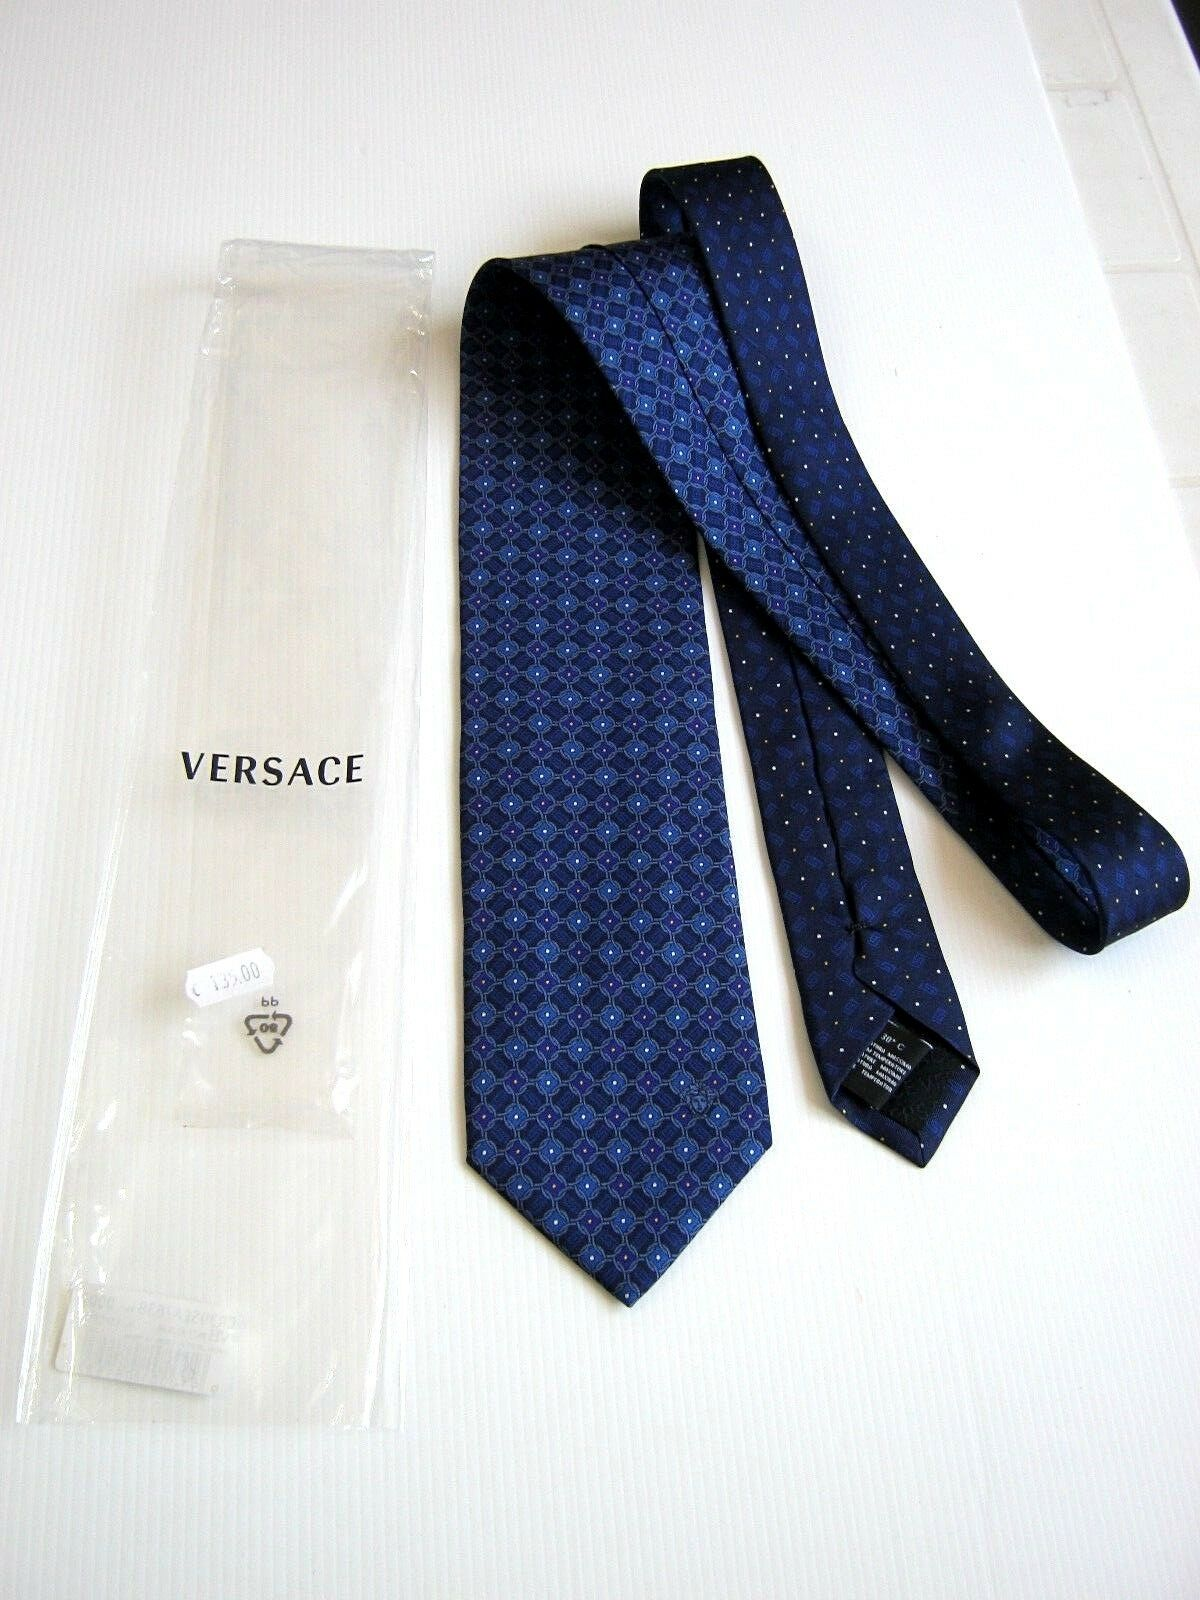 VERSACE NUOVA NEW MADE IN ITALY Originale SETA SILK IDEA REGALO